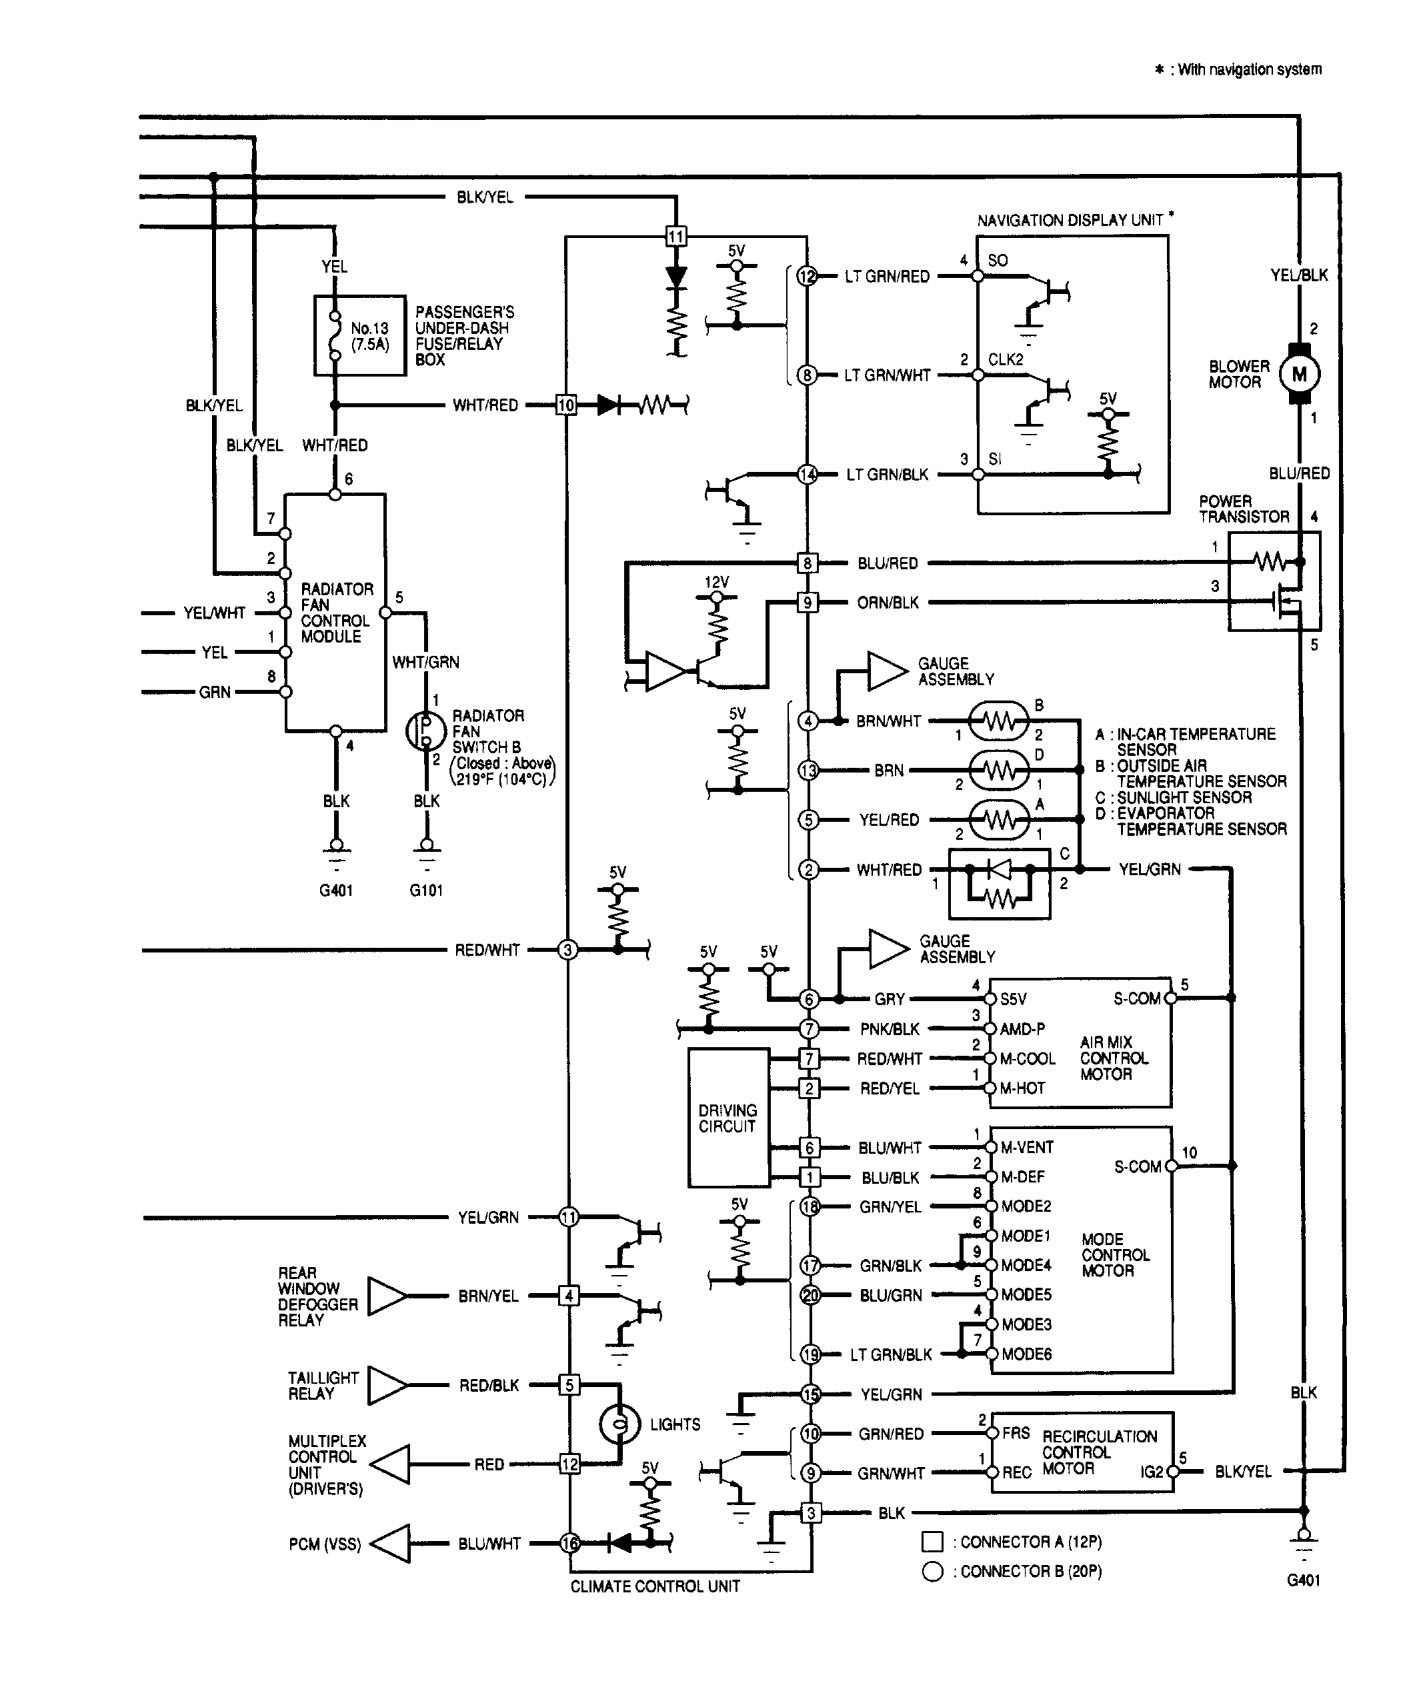 hight resolution of wrg 6273 acura cl wiring diagram74cc shovelhead fxe wiring diagram 8